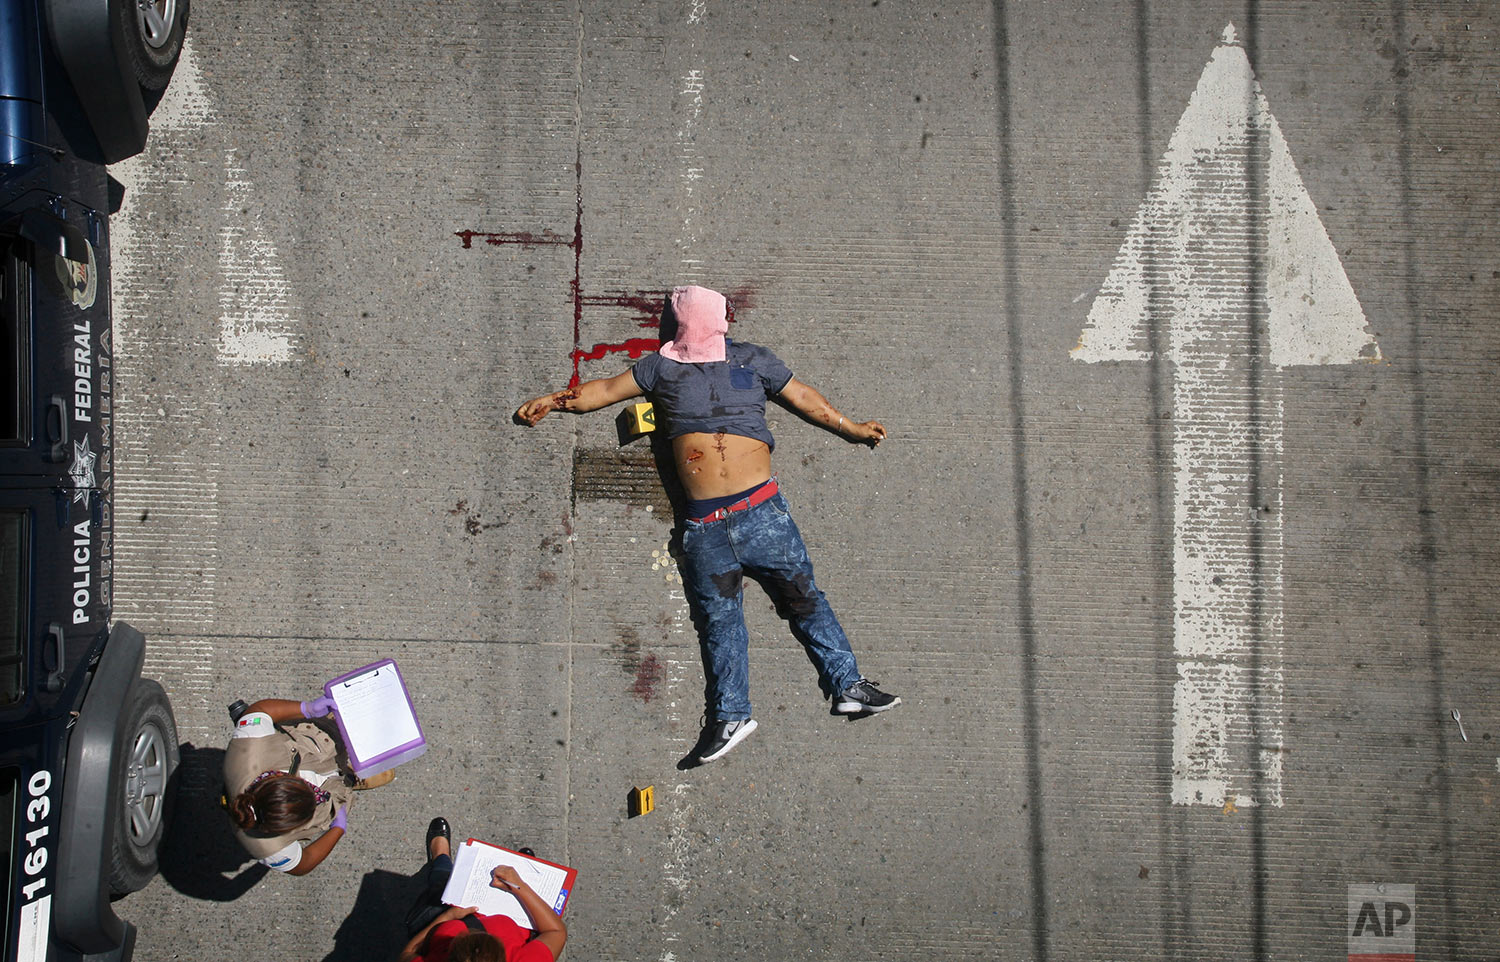 Federal police investigators take notes by the body of a man shot in broad daylight on a central avenue in Acapulco, Mexico, Sunday, Aug. 13, 2017. At least four people were shot in this Pacific coast city Sunday, after Mexico had recently recorded its highest monthly murder total in at least 20 years. (AP Photo/Bernandino Hernandez)